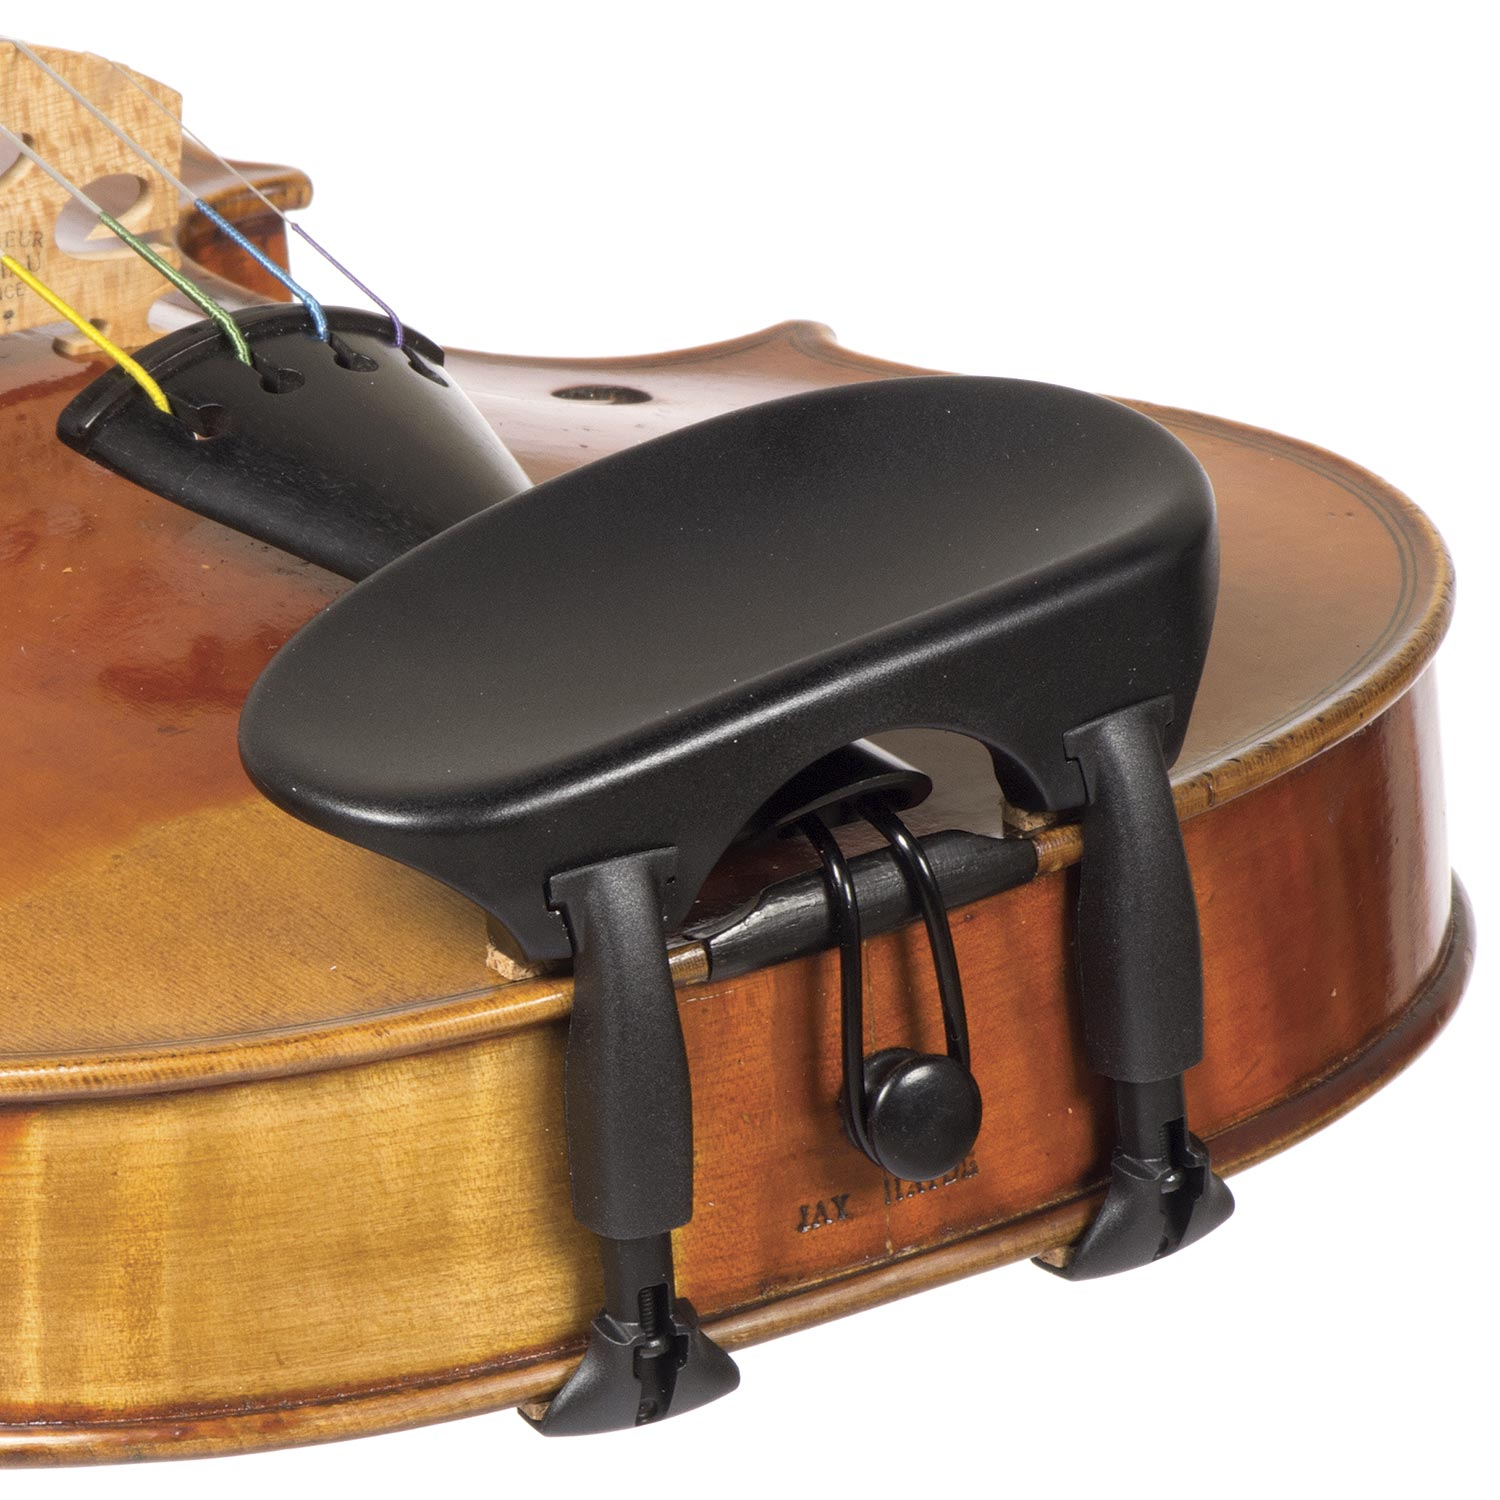 Wittner Composite Center Mount 4 4 Violin Chinrest by Wittner